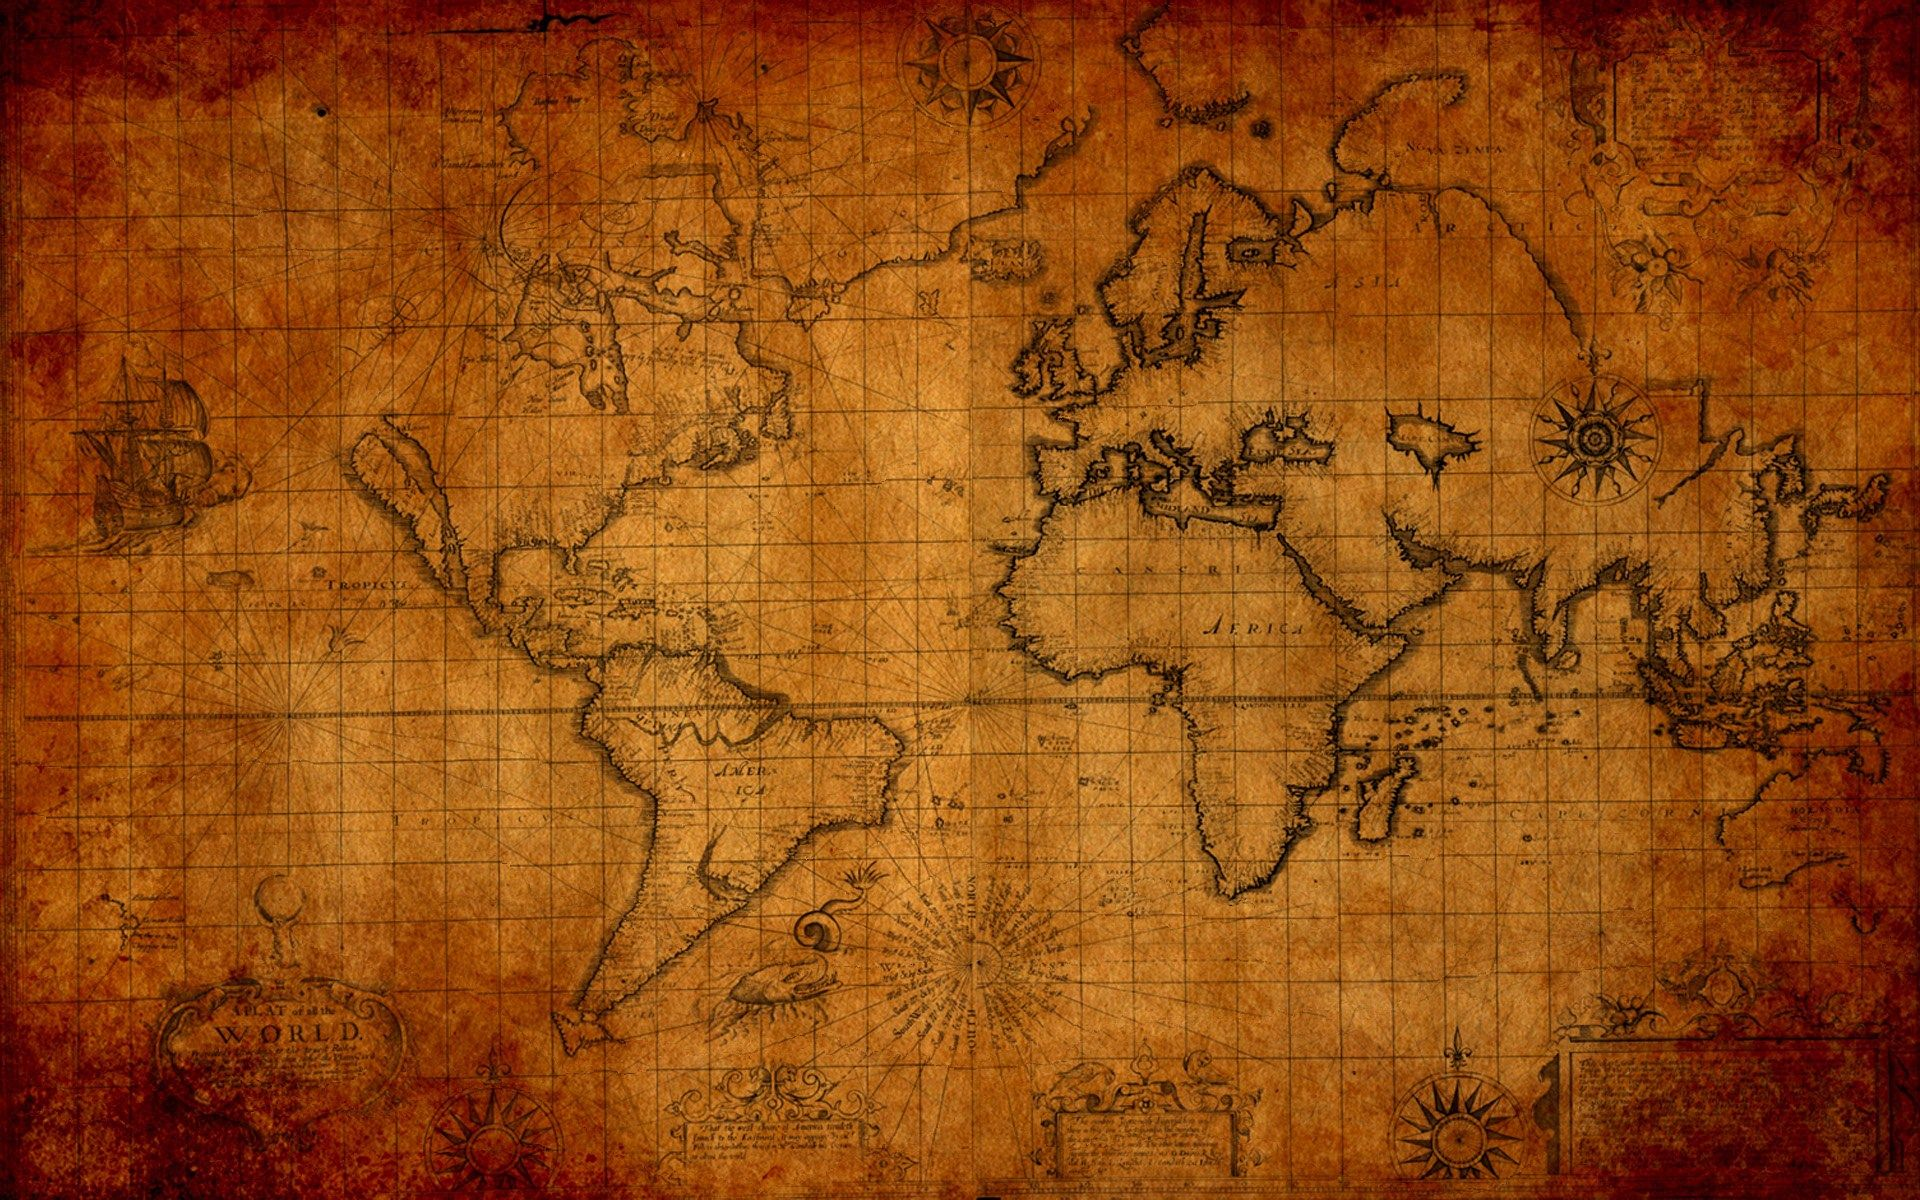 Free Download World Map Wallpaper Wallpapers Backgrounds Hd